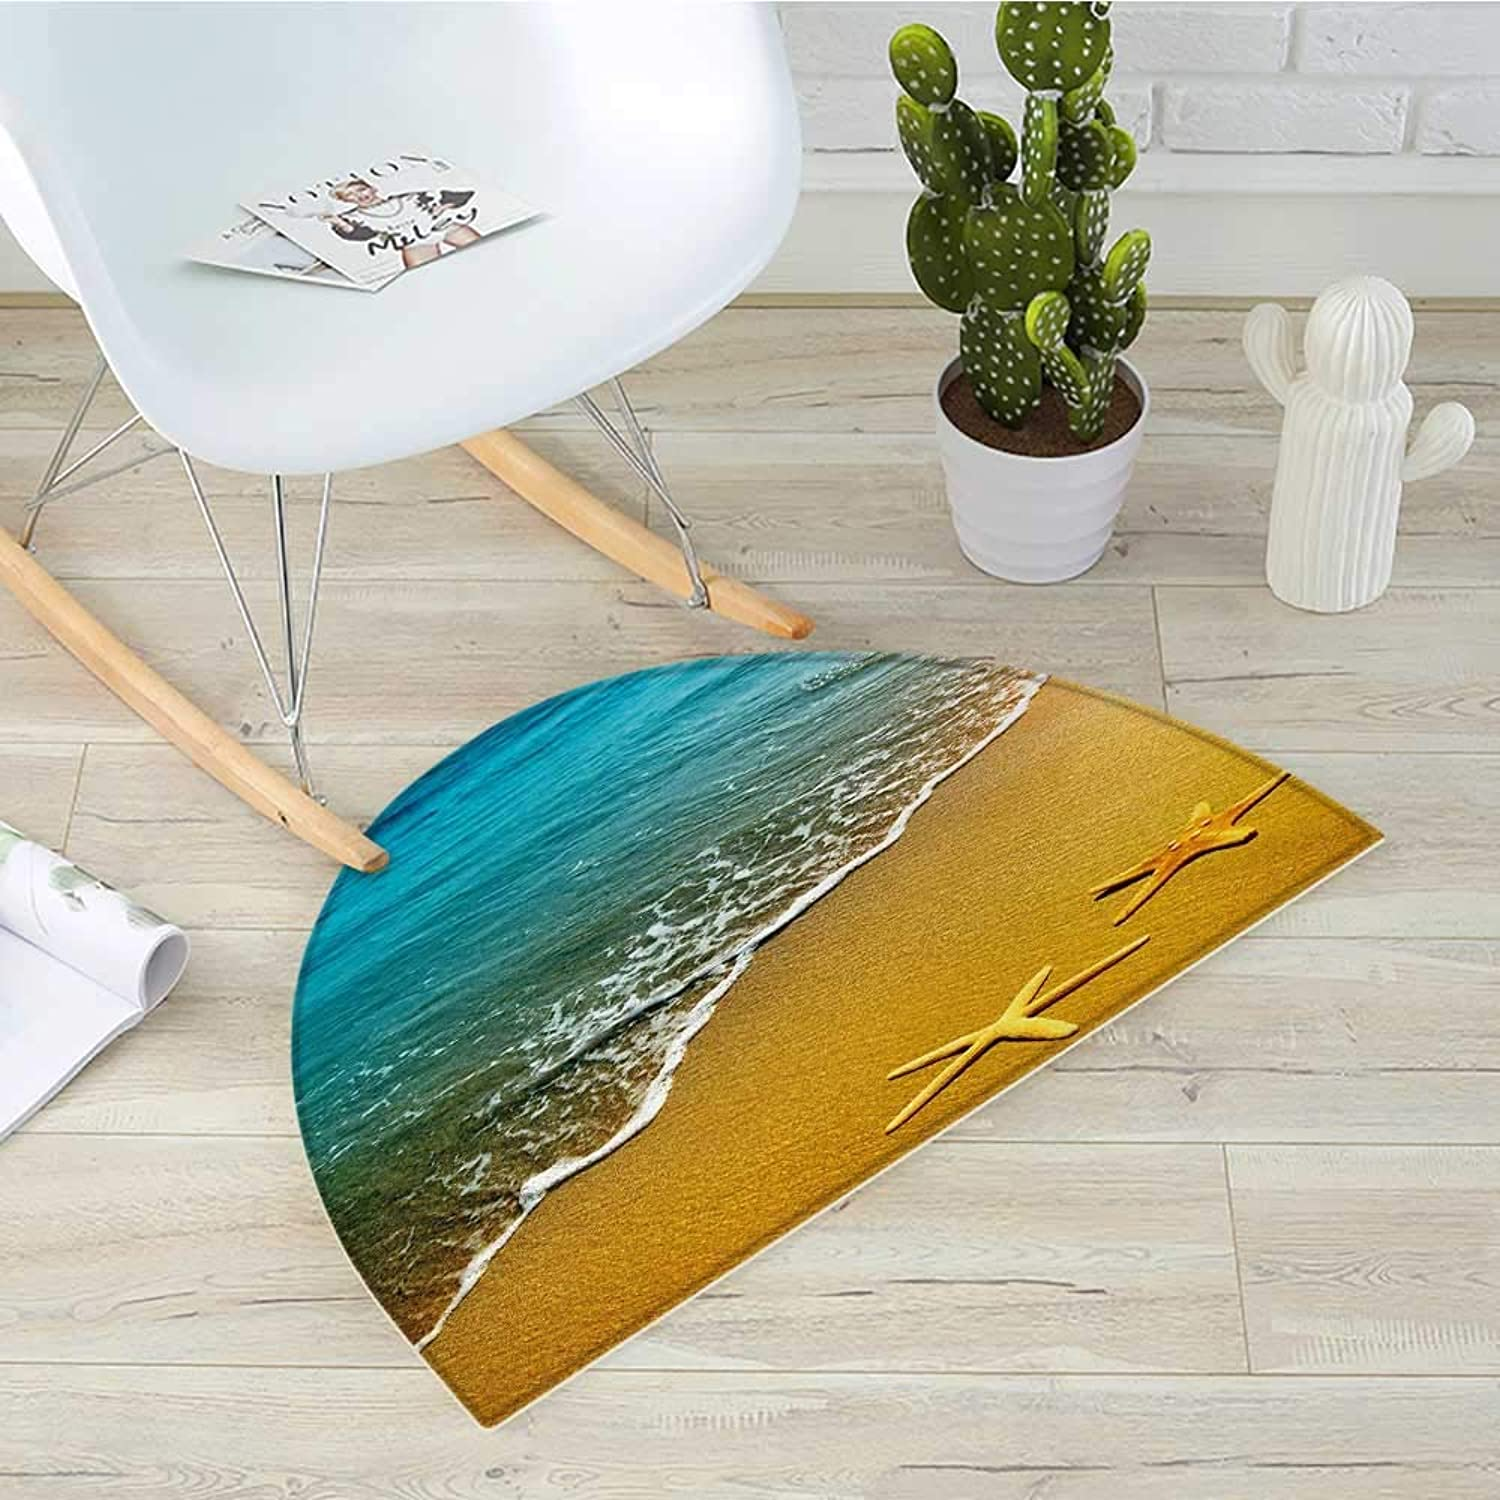 Landscape Semicircular CushionTropical Island Beach Caribbean Atlantic Ocean Scenery Artwork Print Entry Door Mat H 43.3  xD 64.9  Pale bluee and Marigold